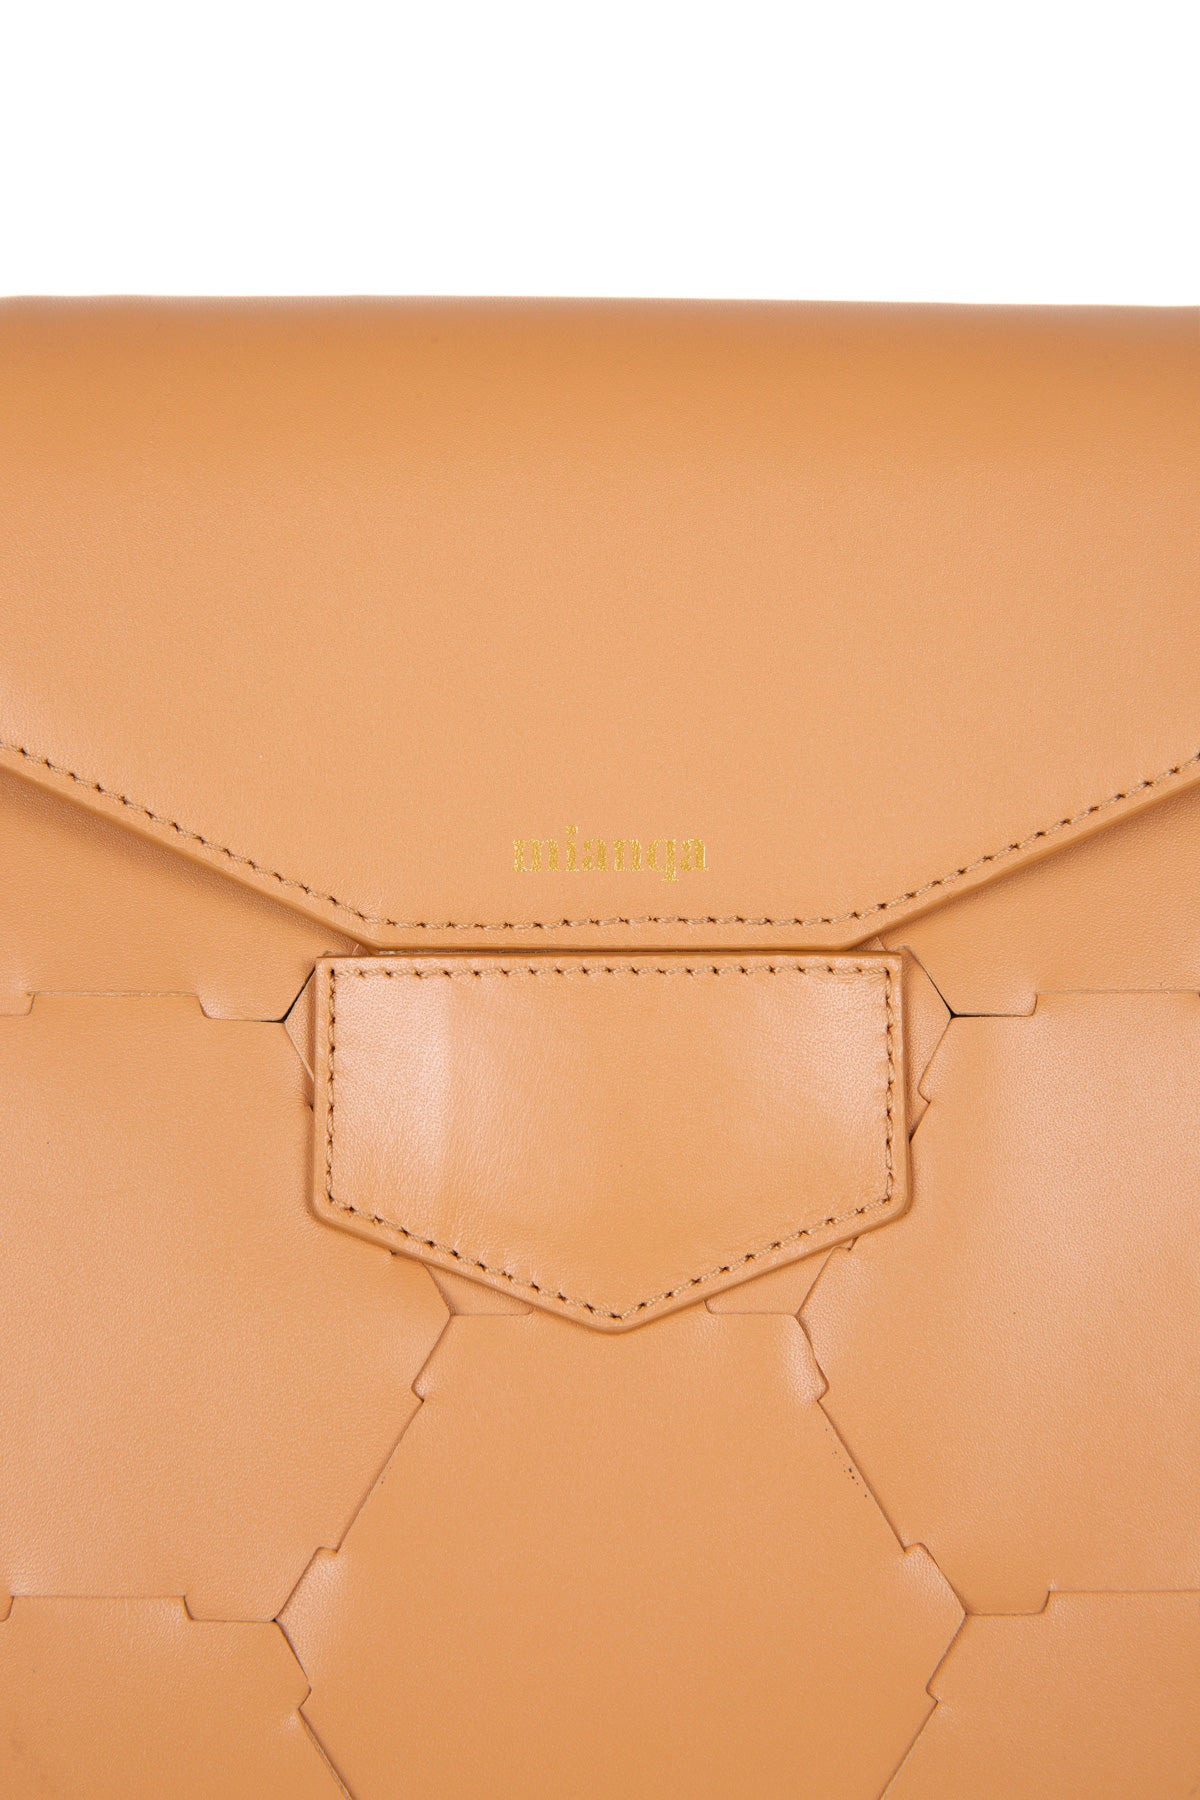 A F E T | Leather Tote Bag Camel